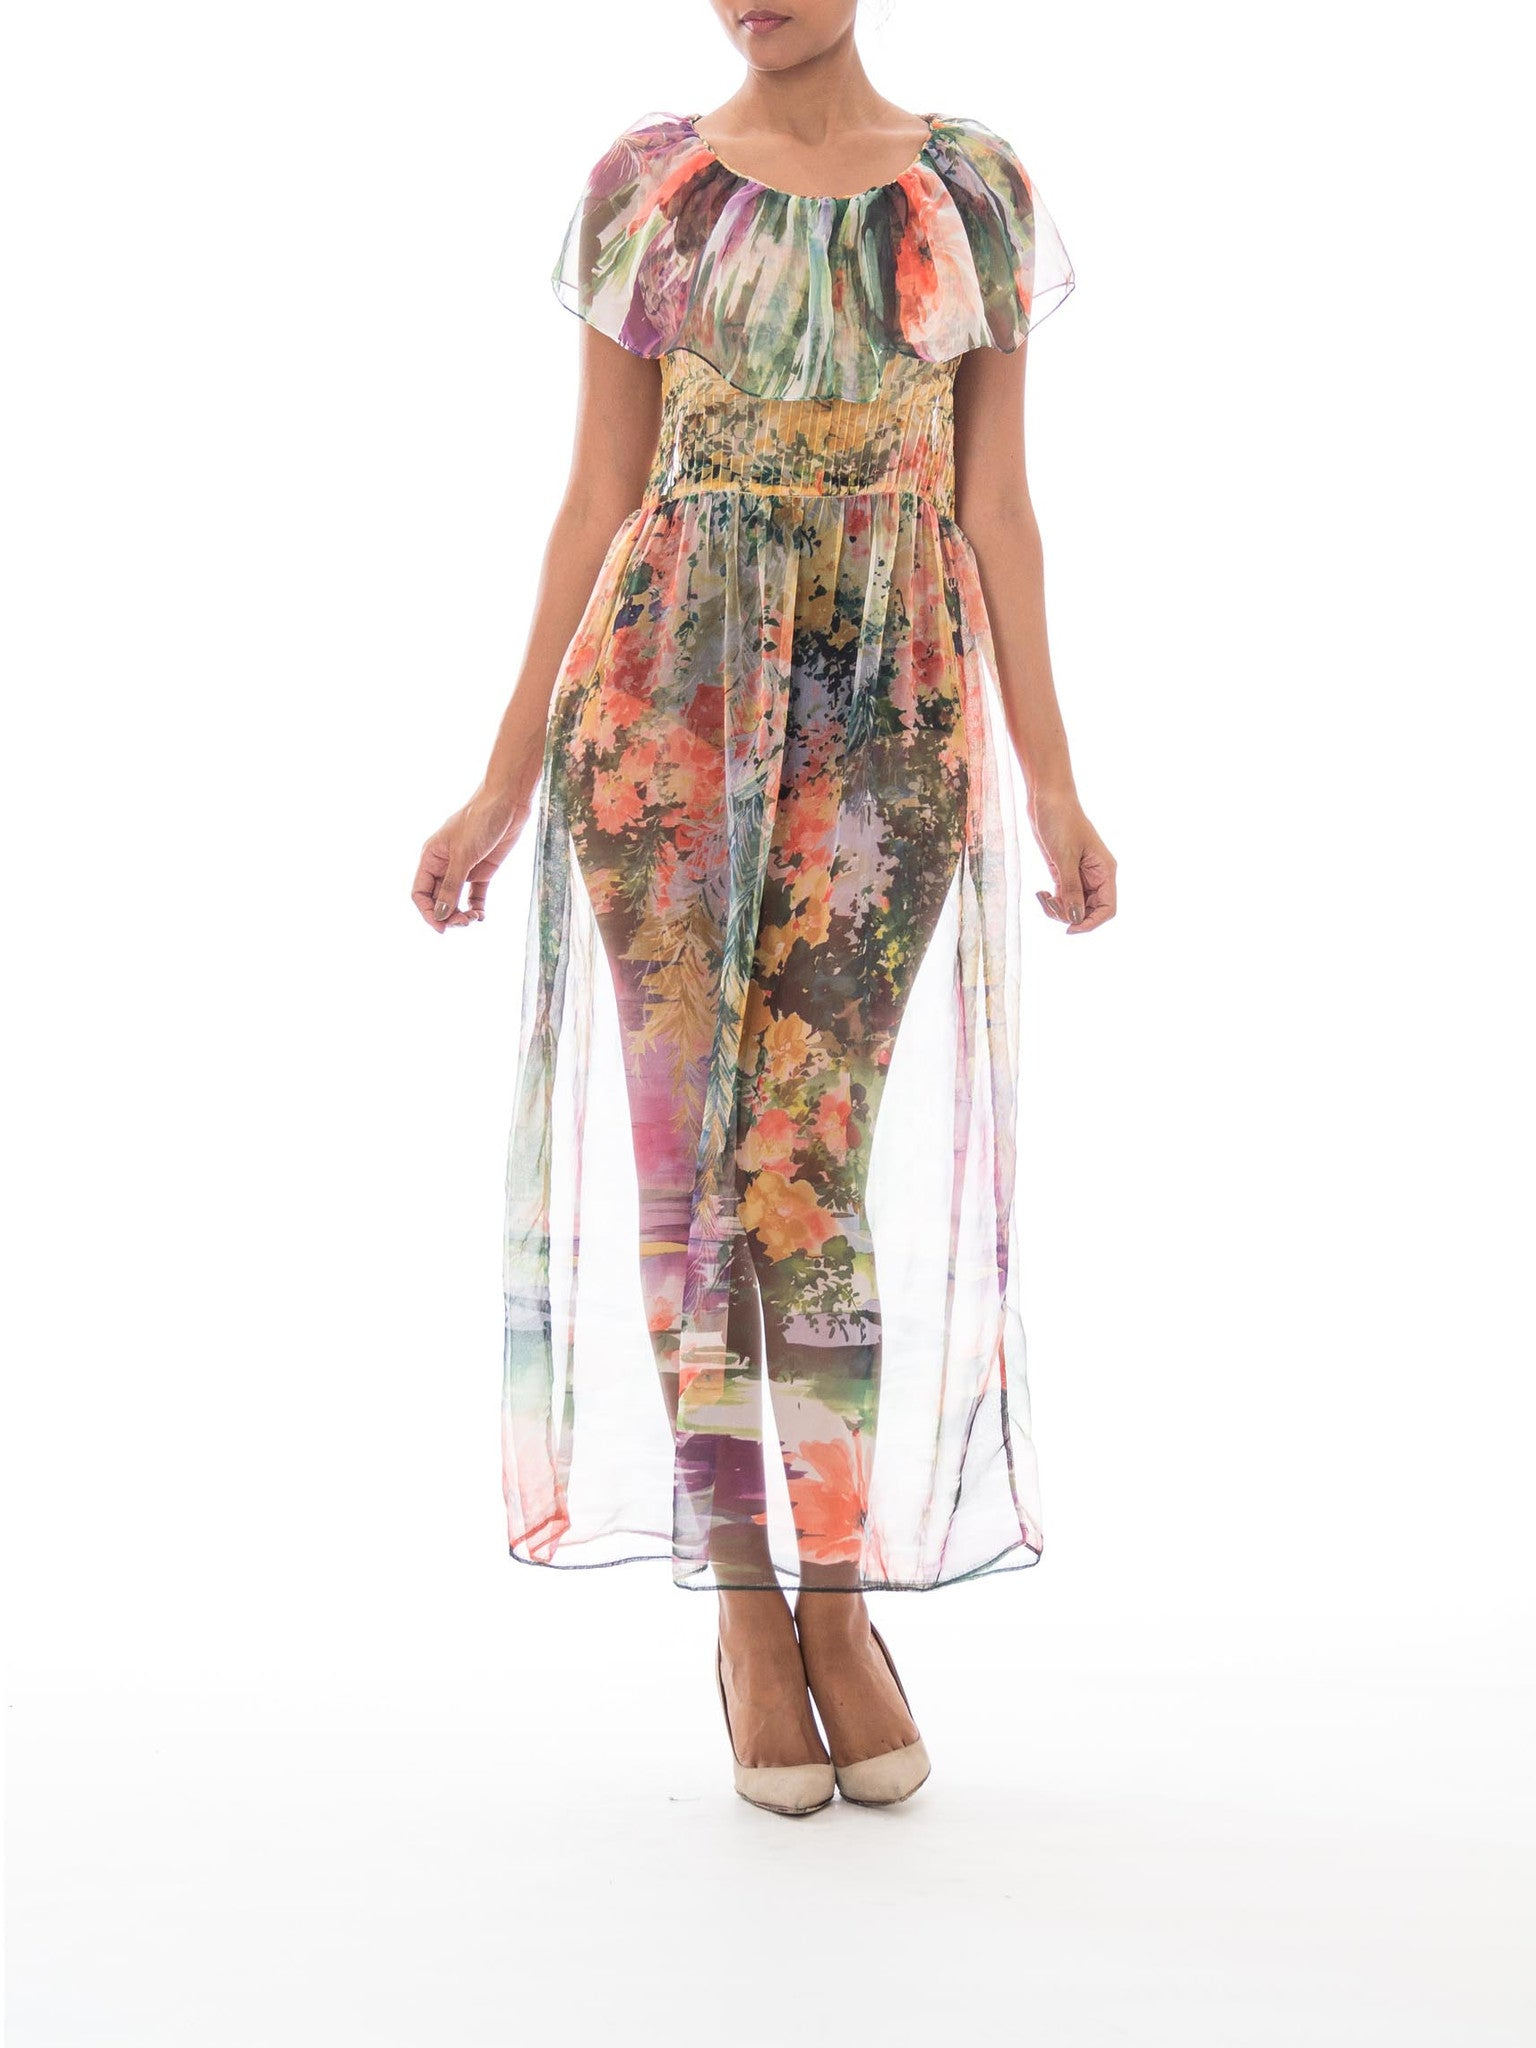 1970s Boho Sheer Chiffon Watercolor Floral Printed Maxi Dress w/ Picture Collar